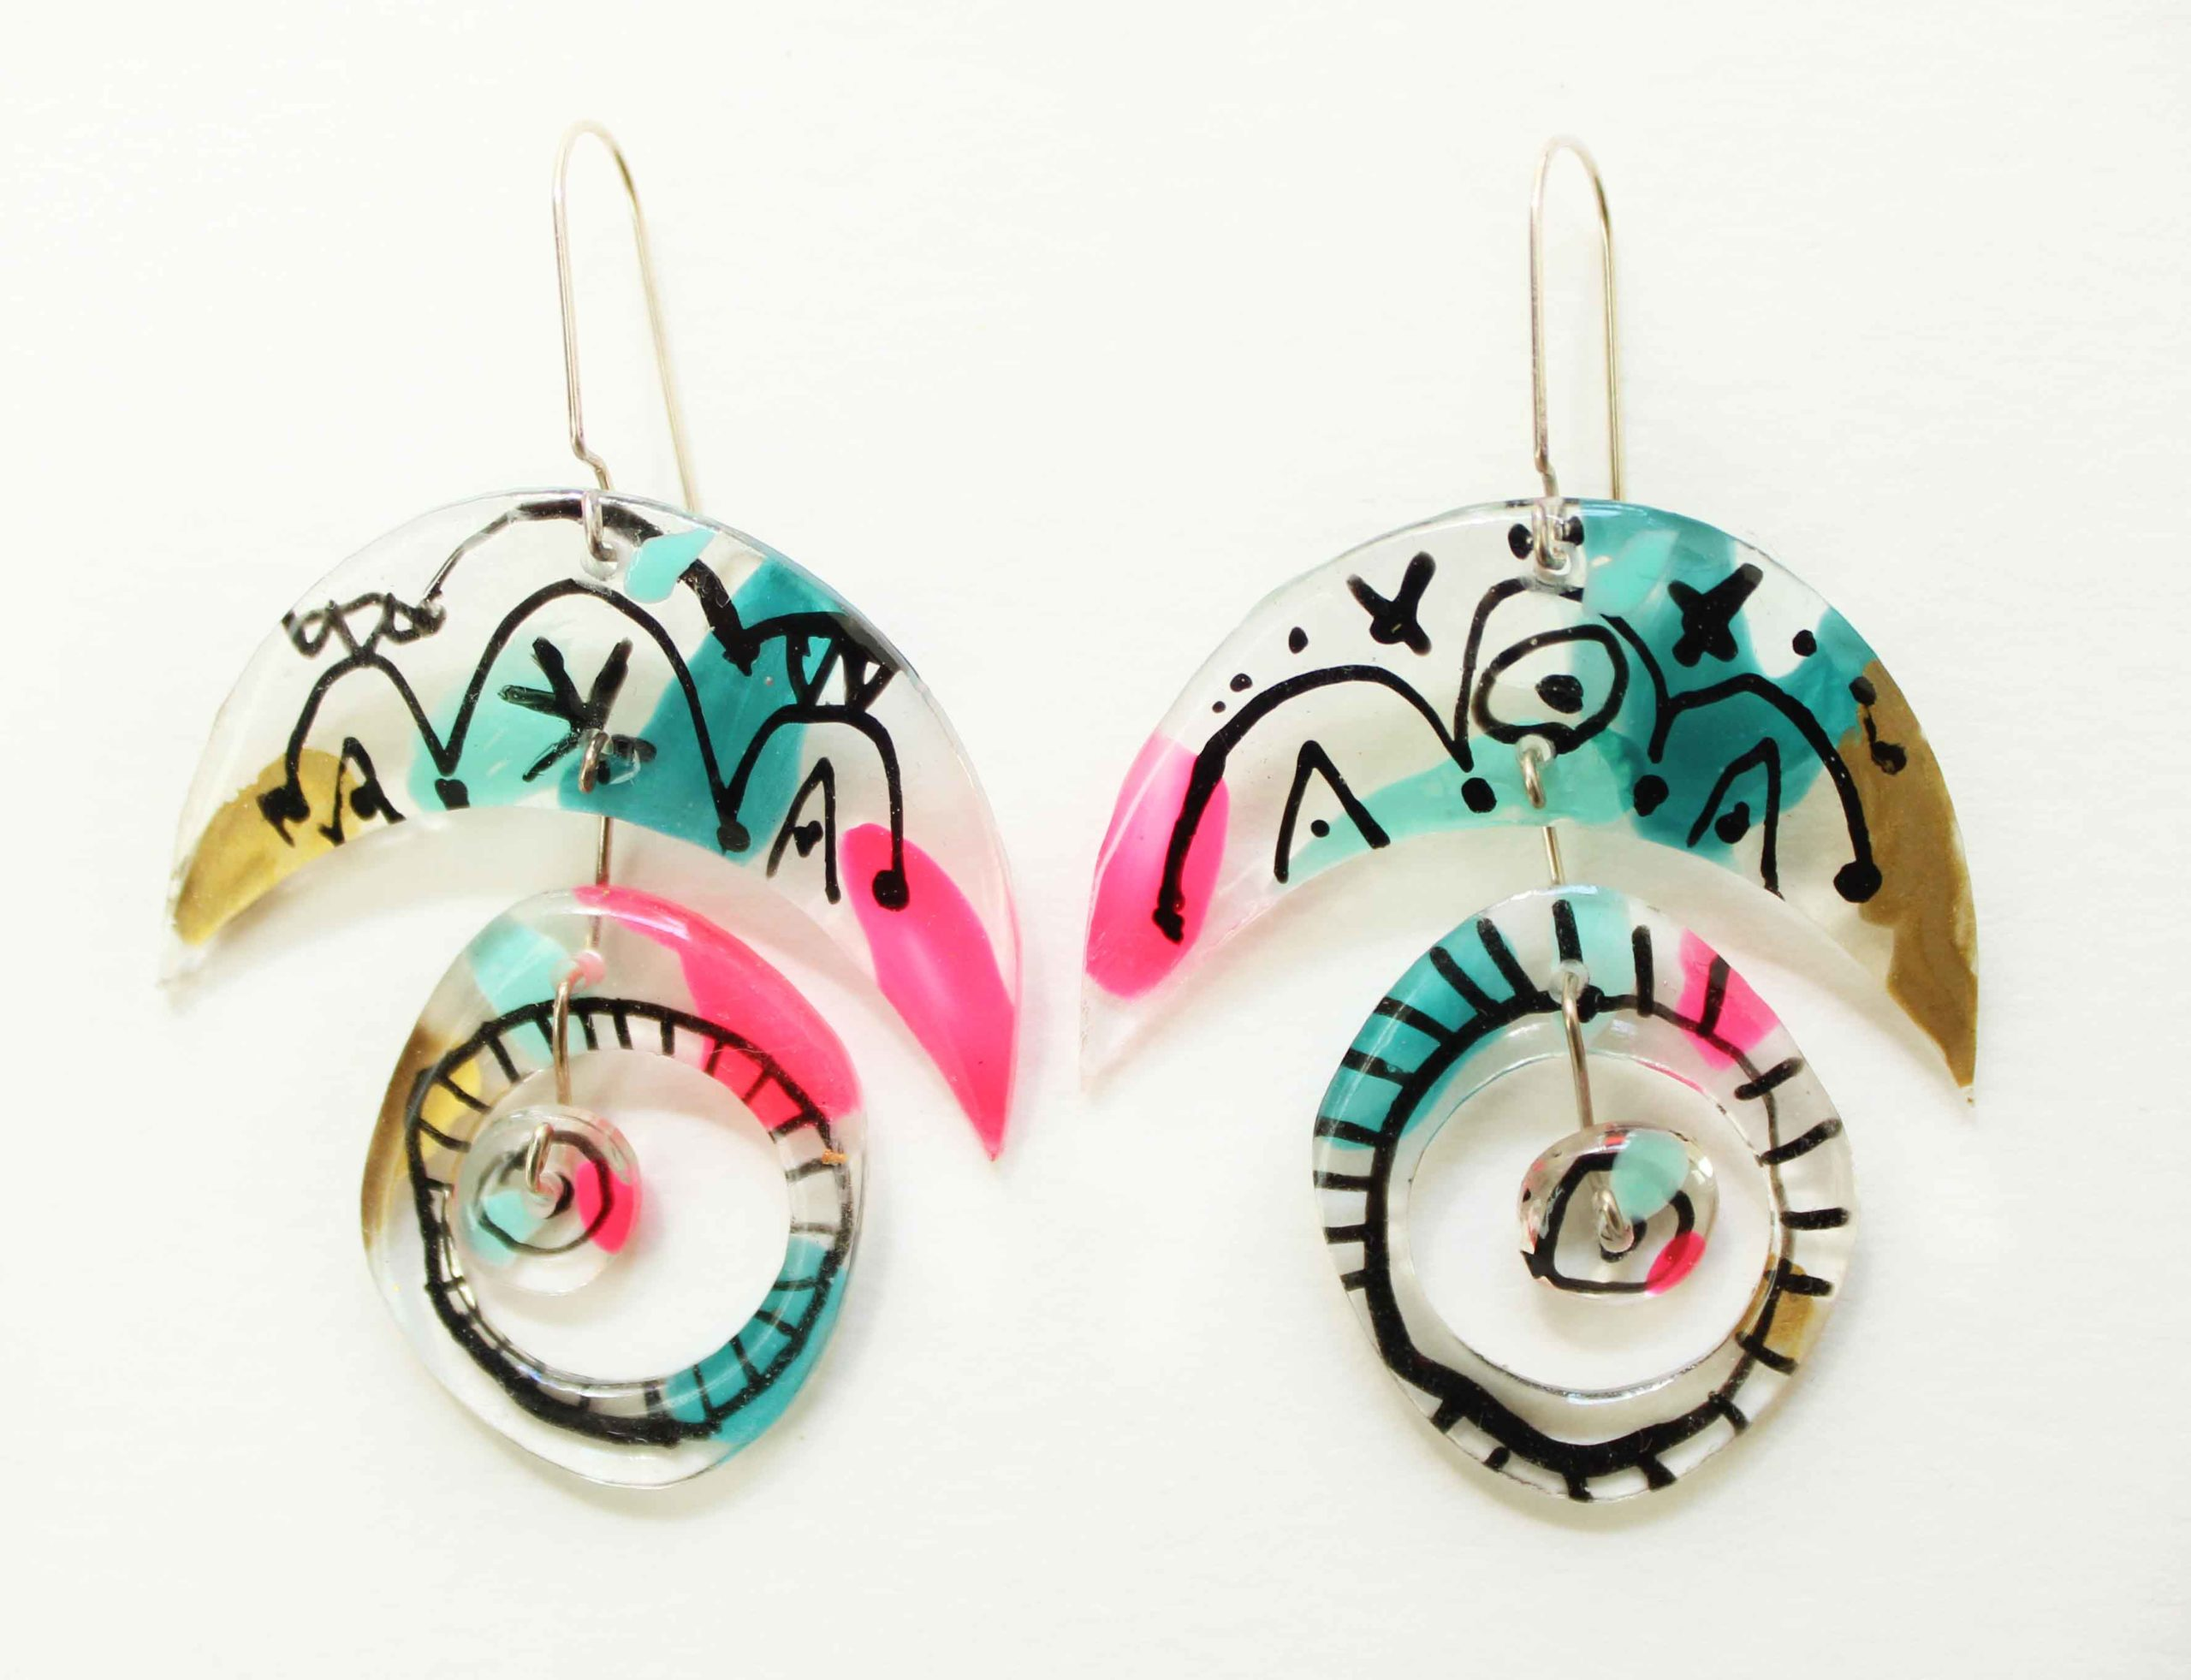 """Neely Goniodsky Pink, Gold and Turquoise, 2020 Acrylic, resin and sterling silver 2 ½"""" long"""